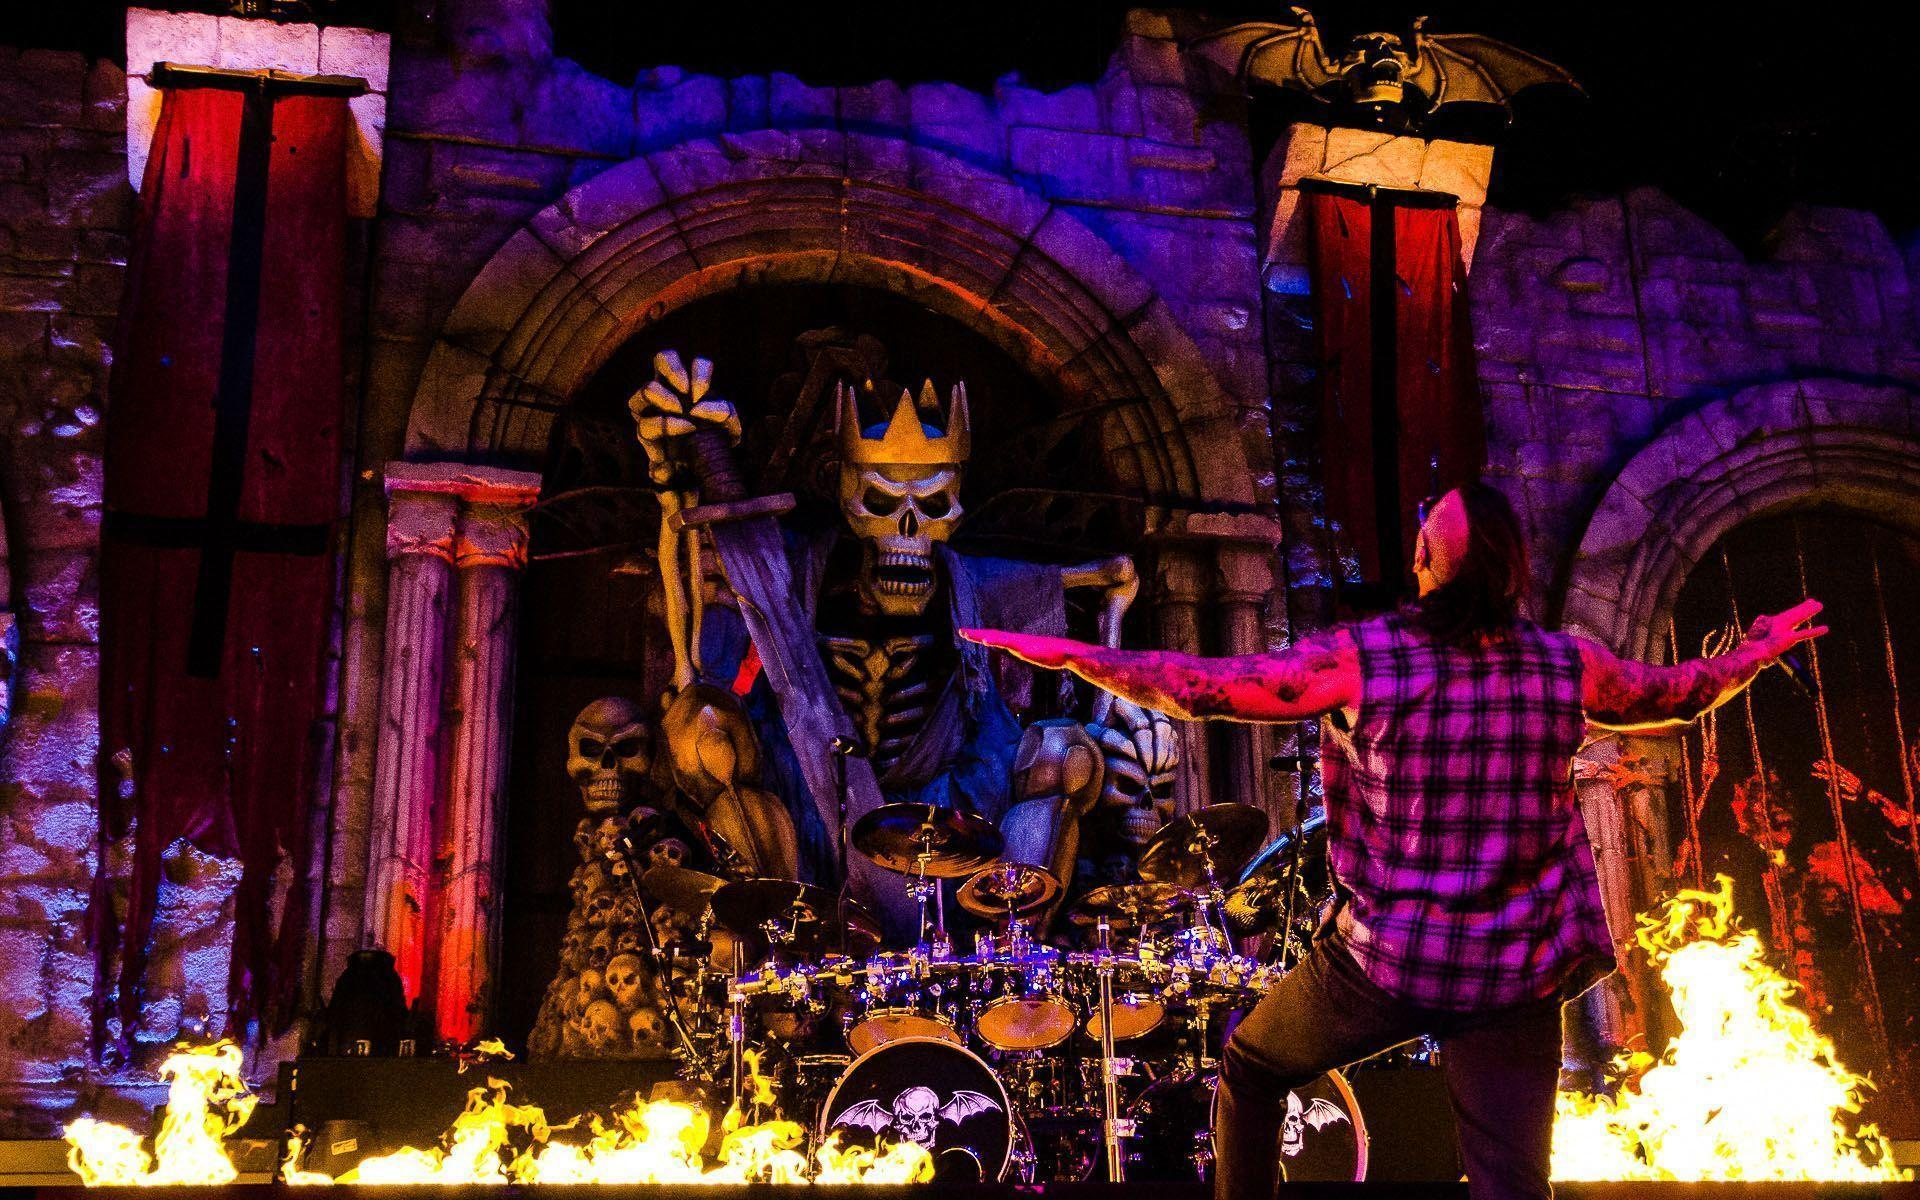 Avenged sevenfold 2016 wallpapers wallpaper cave avenged sevenfold 2015 wallpapers wallpaper cave voltagebd Gallery